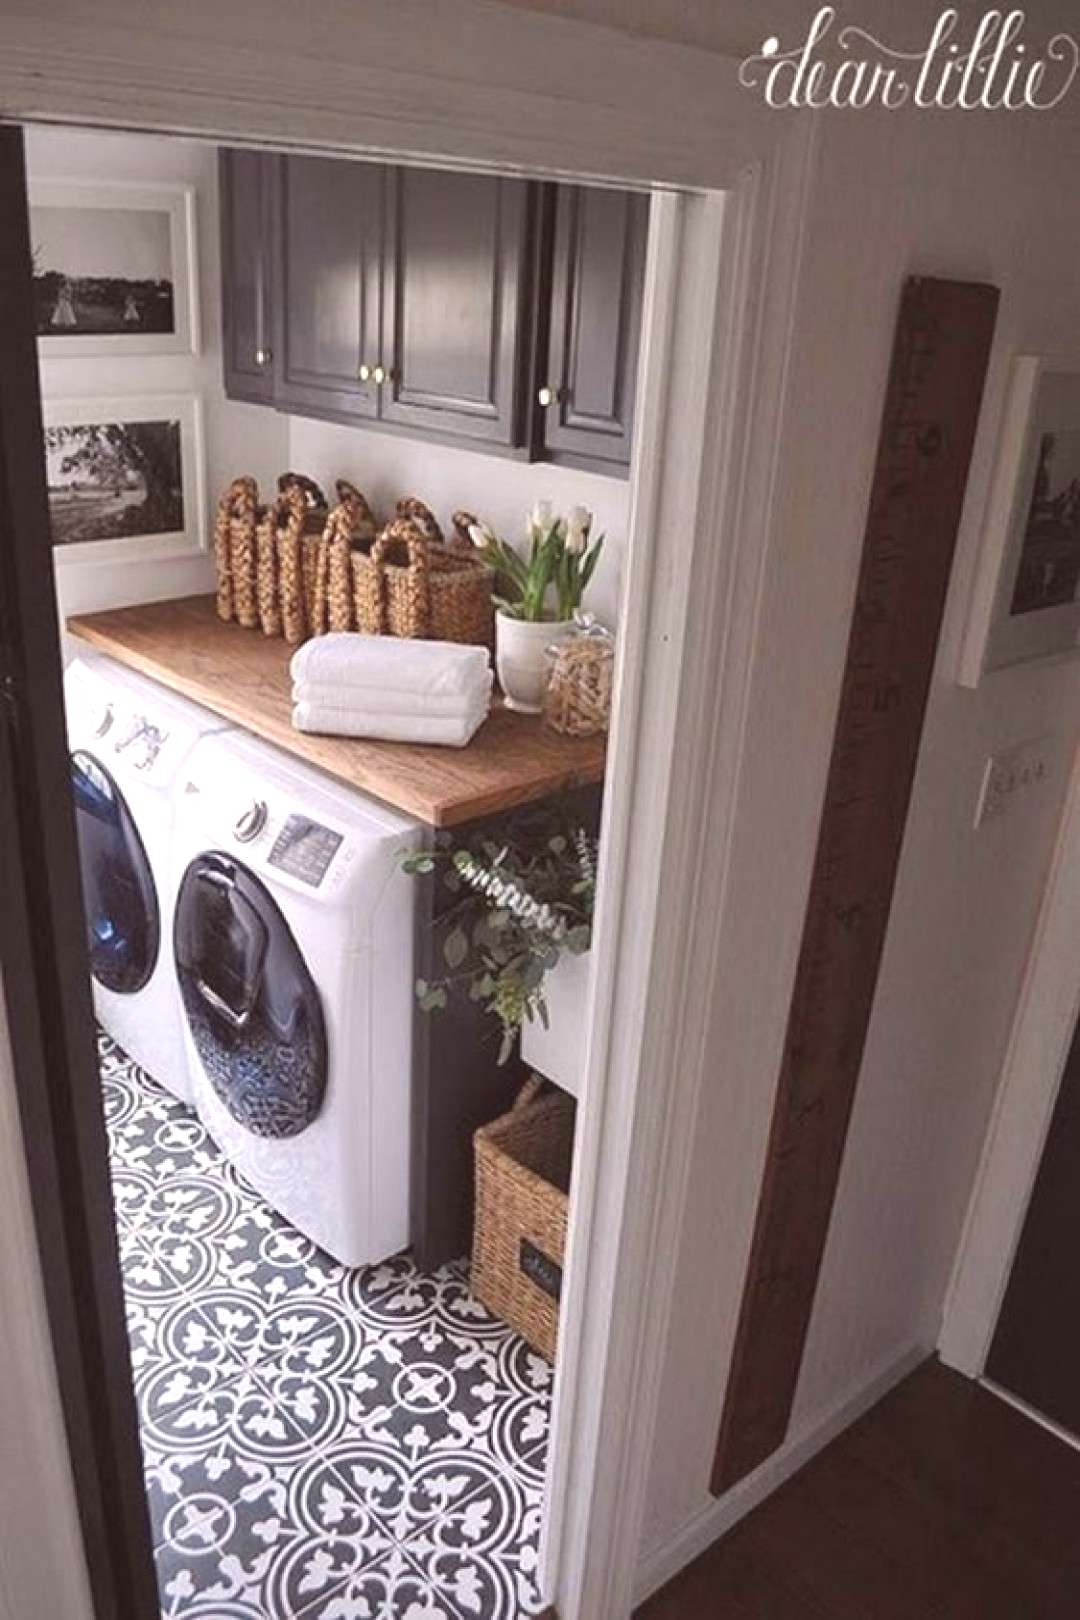 Decorating A Laundry Room On A Budget 2 above washer and dryer diy 40 Perfect Decorating A Laundry